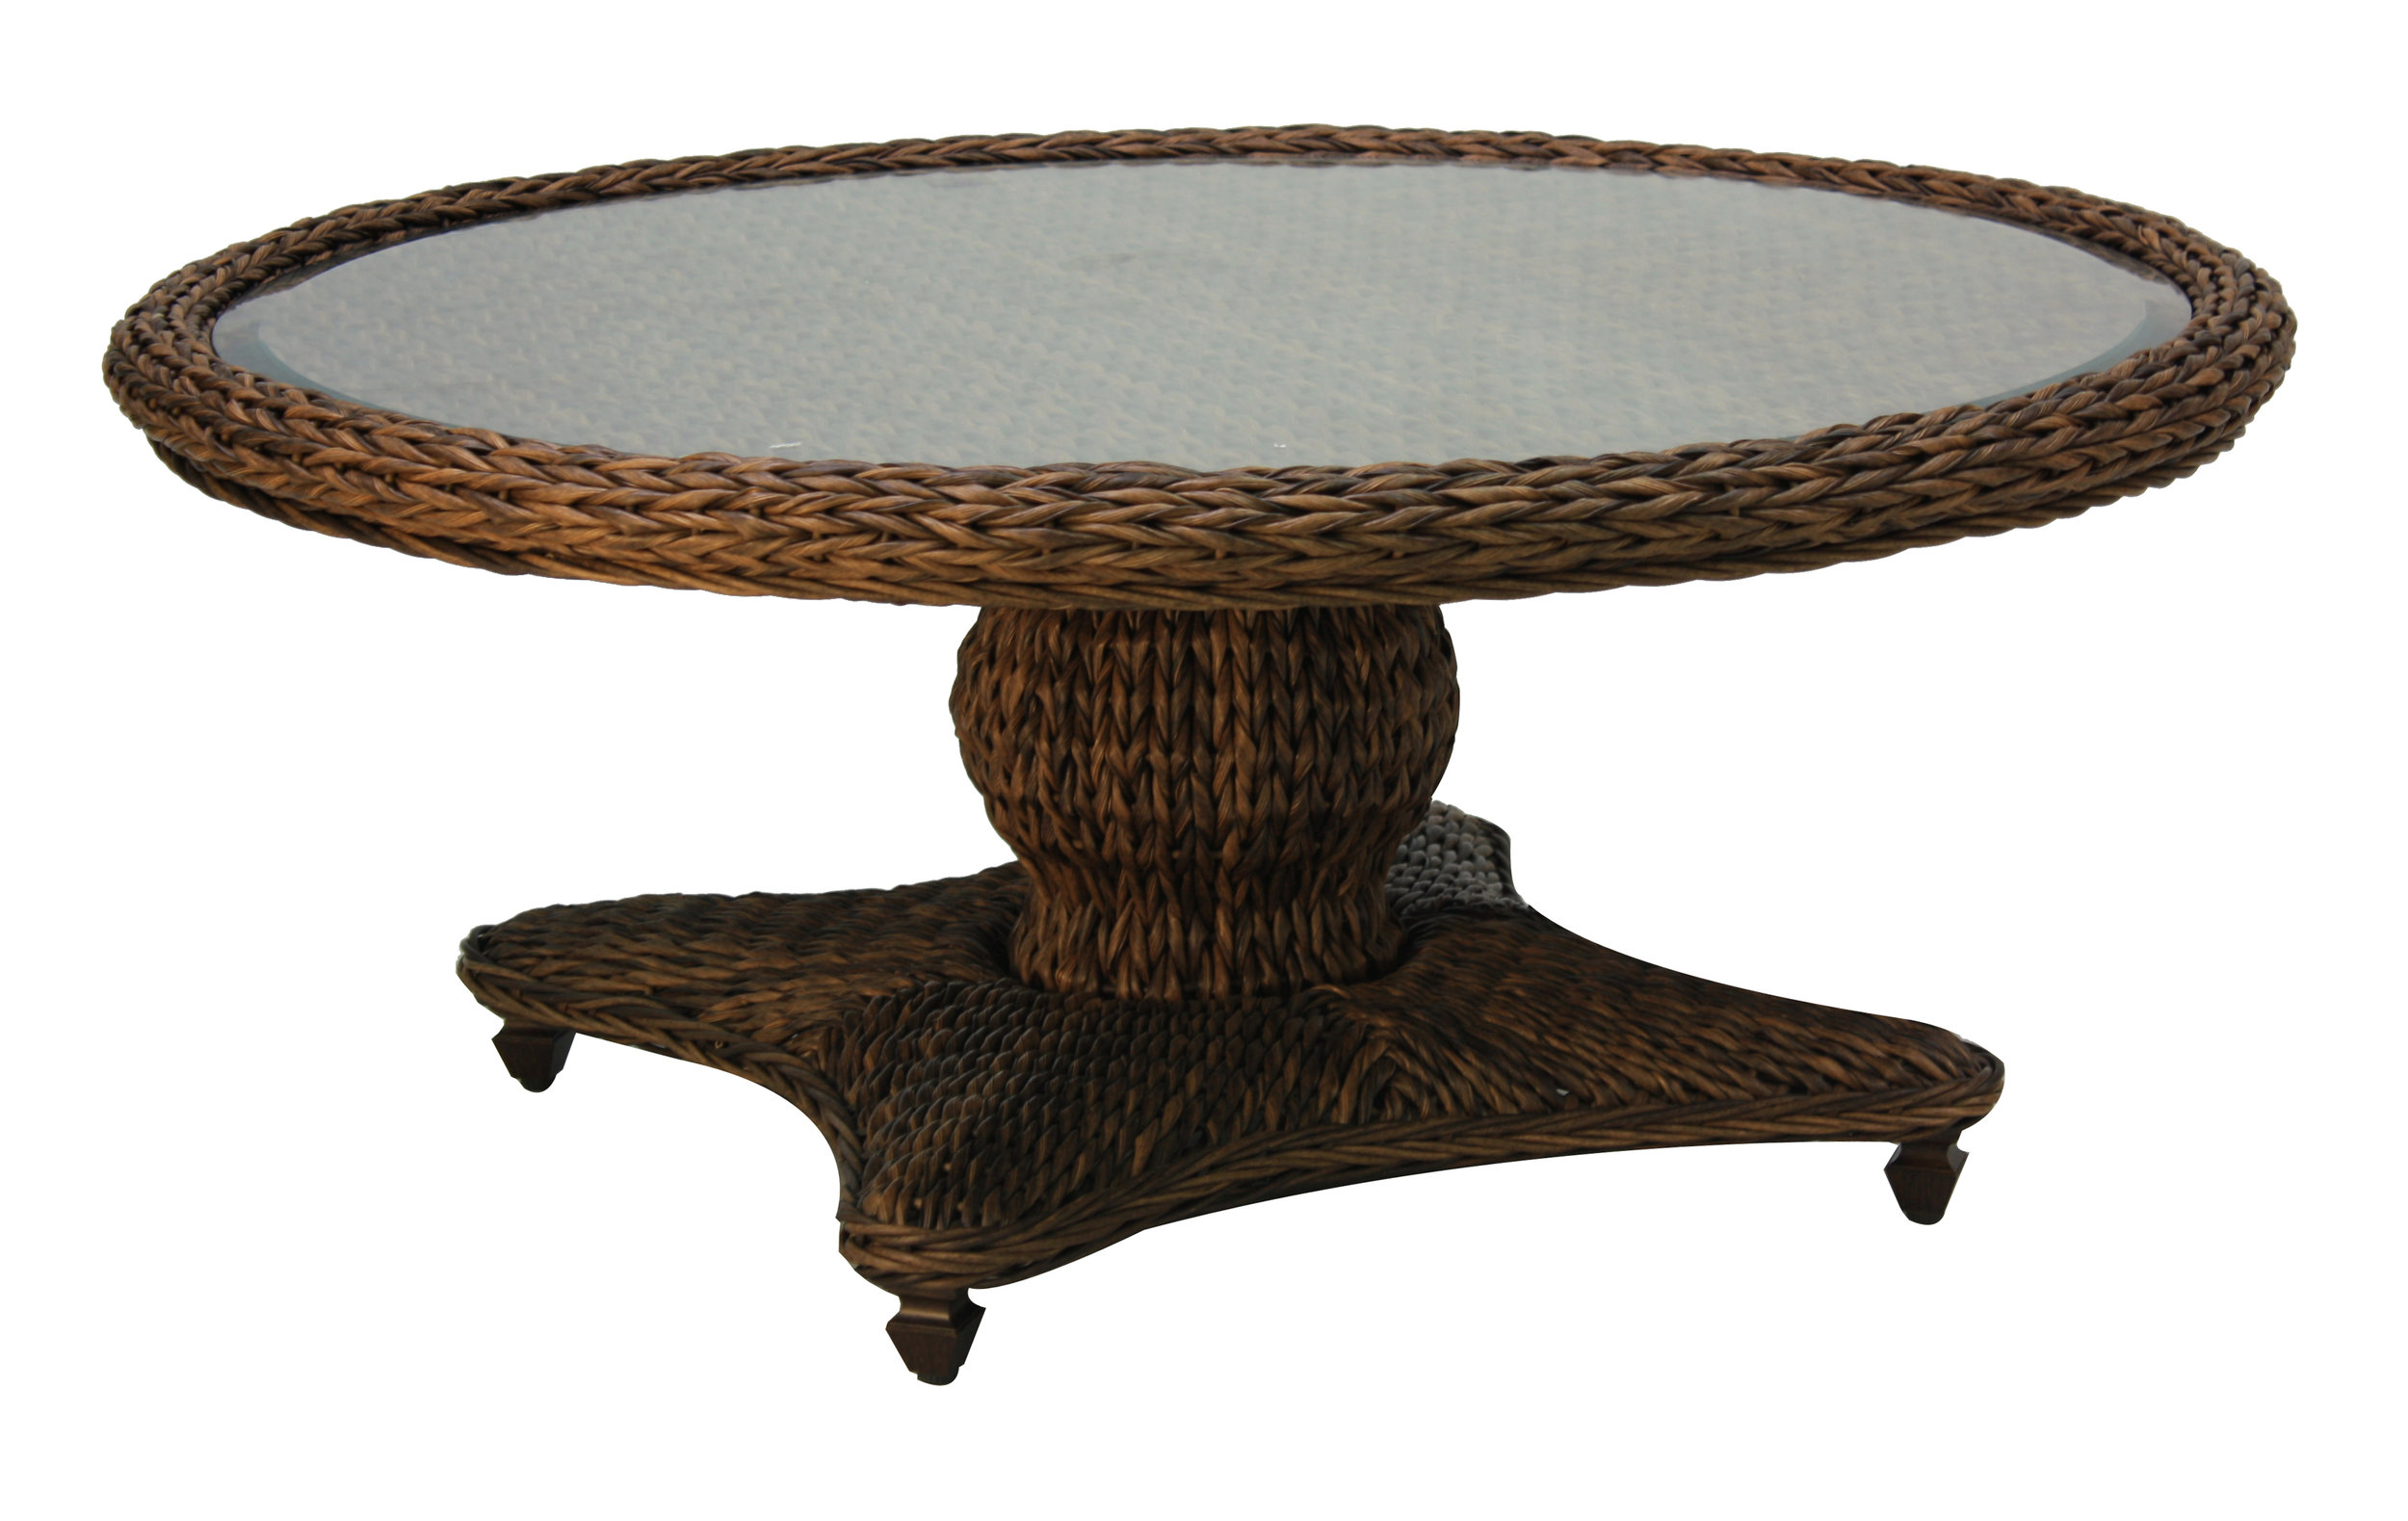 "973842 Antigua Round Coffee Table * see Book  (973842TW Antigua Woven Top & Glass) (973842B Antigua RoundCoffee Table Base)  44"" x 44"" x 21.9"""